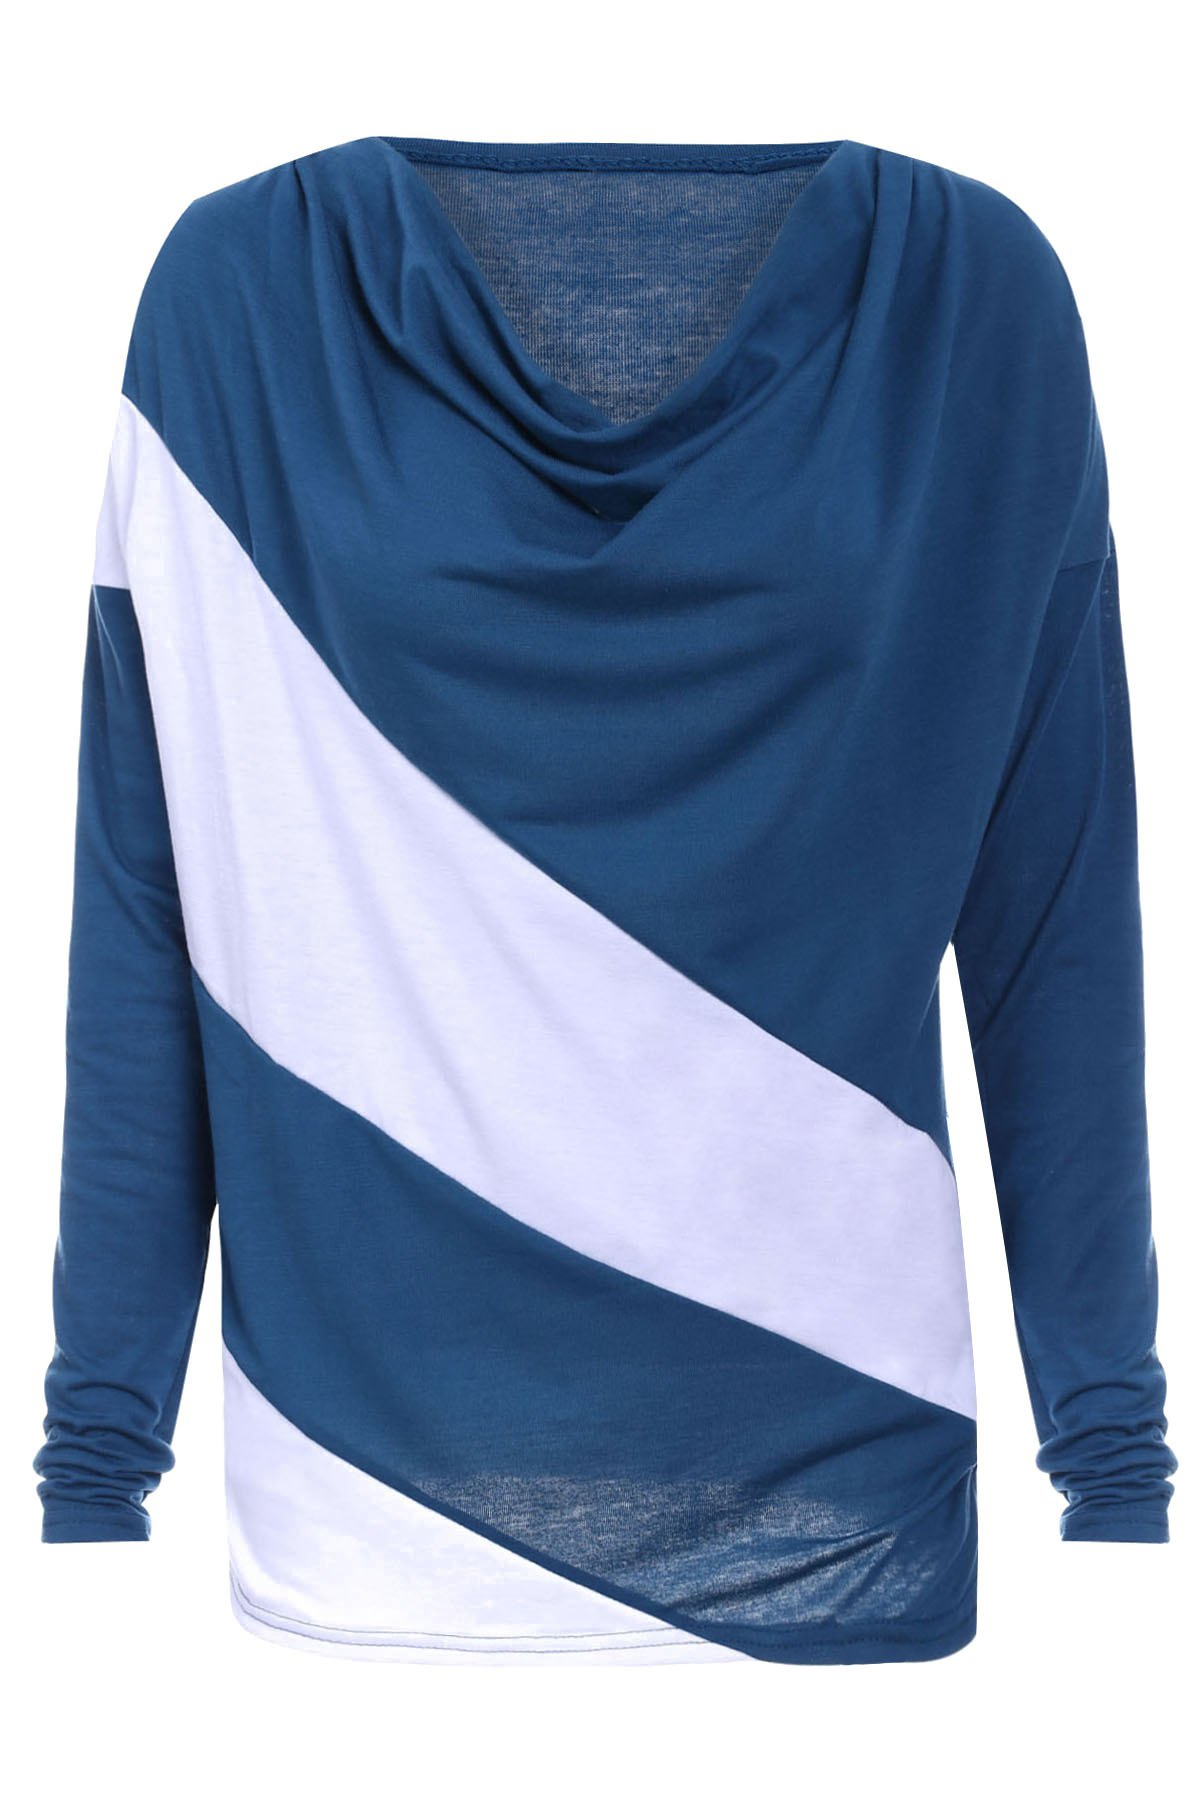 Cowl Neck Long Sleeve Hit Color T-Shirt For Women